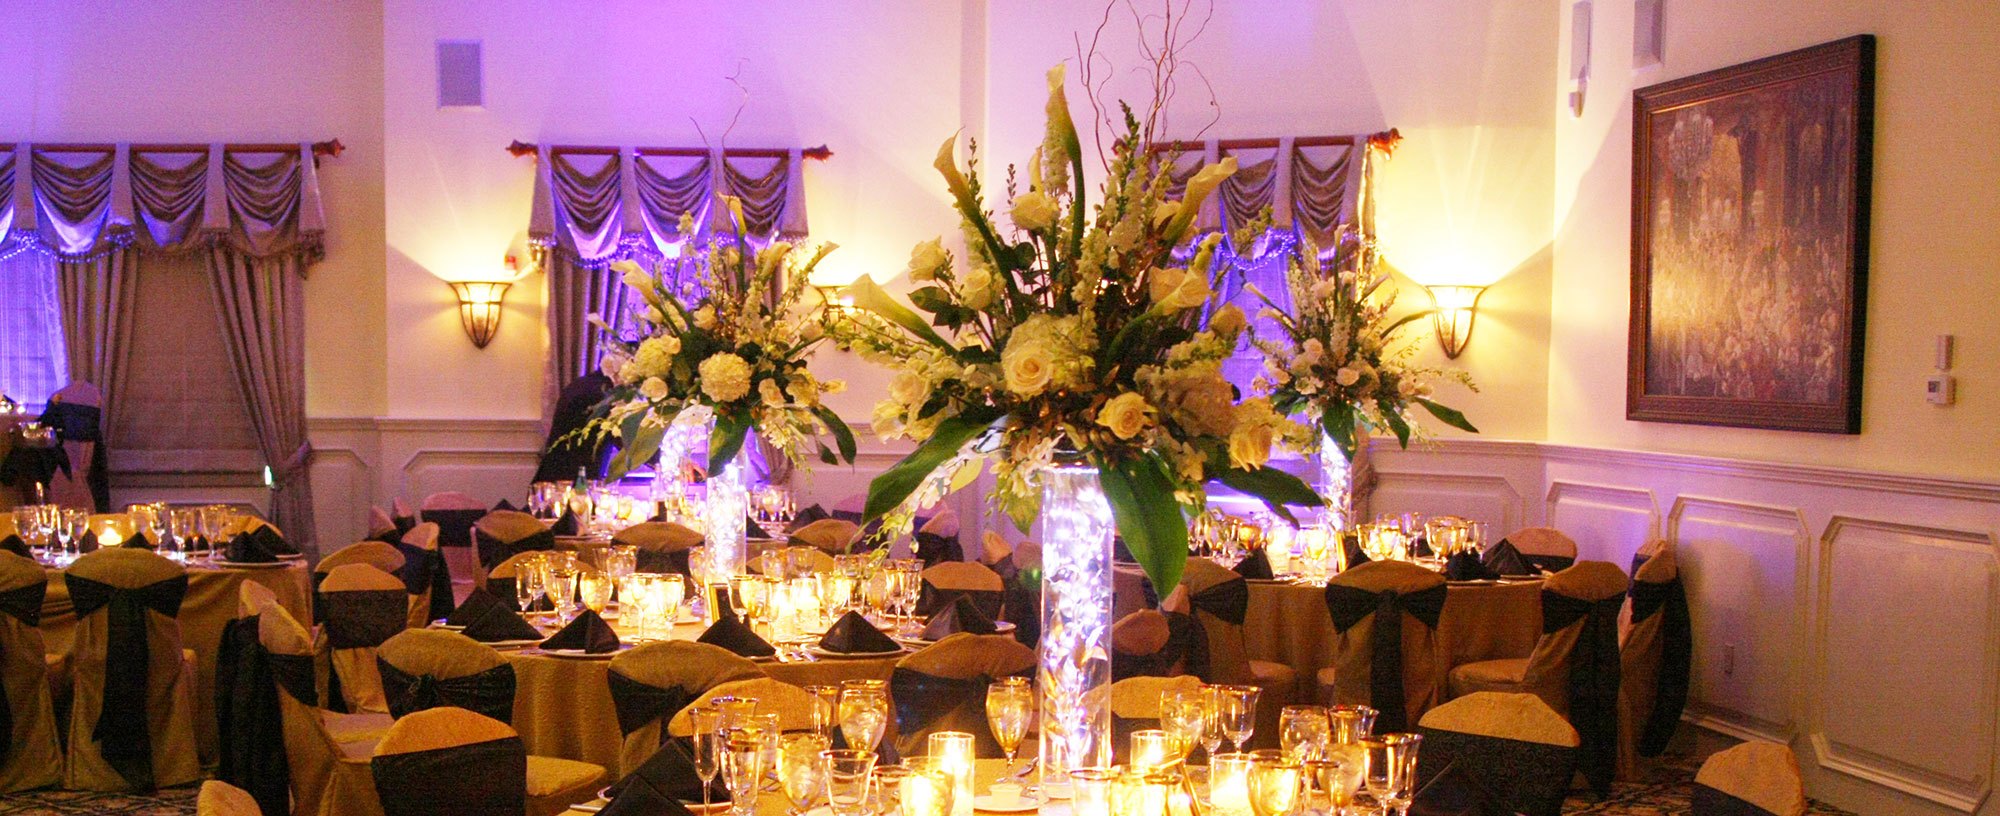 One of the most elegant wedding venues in nj the brick house junglespirit Choice Image